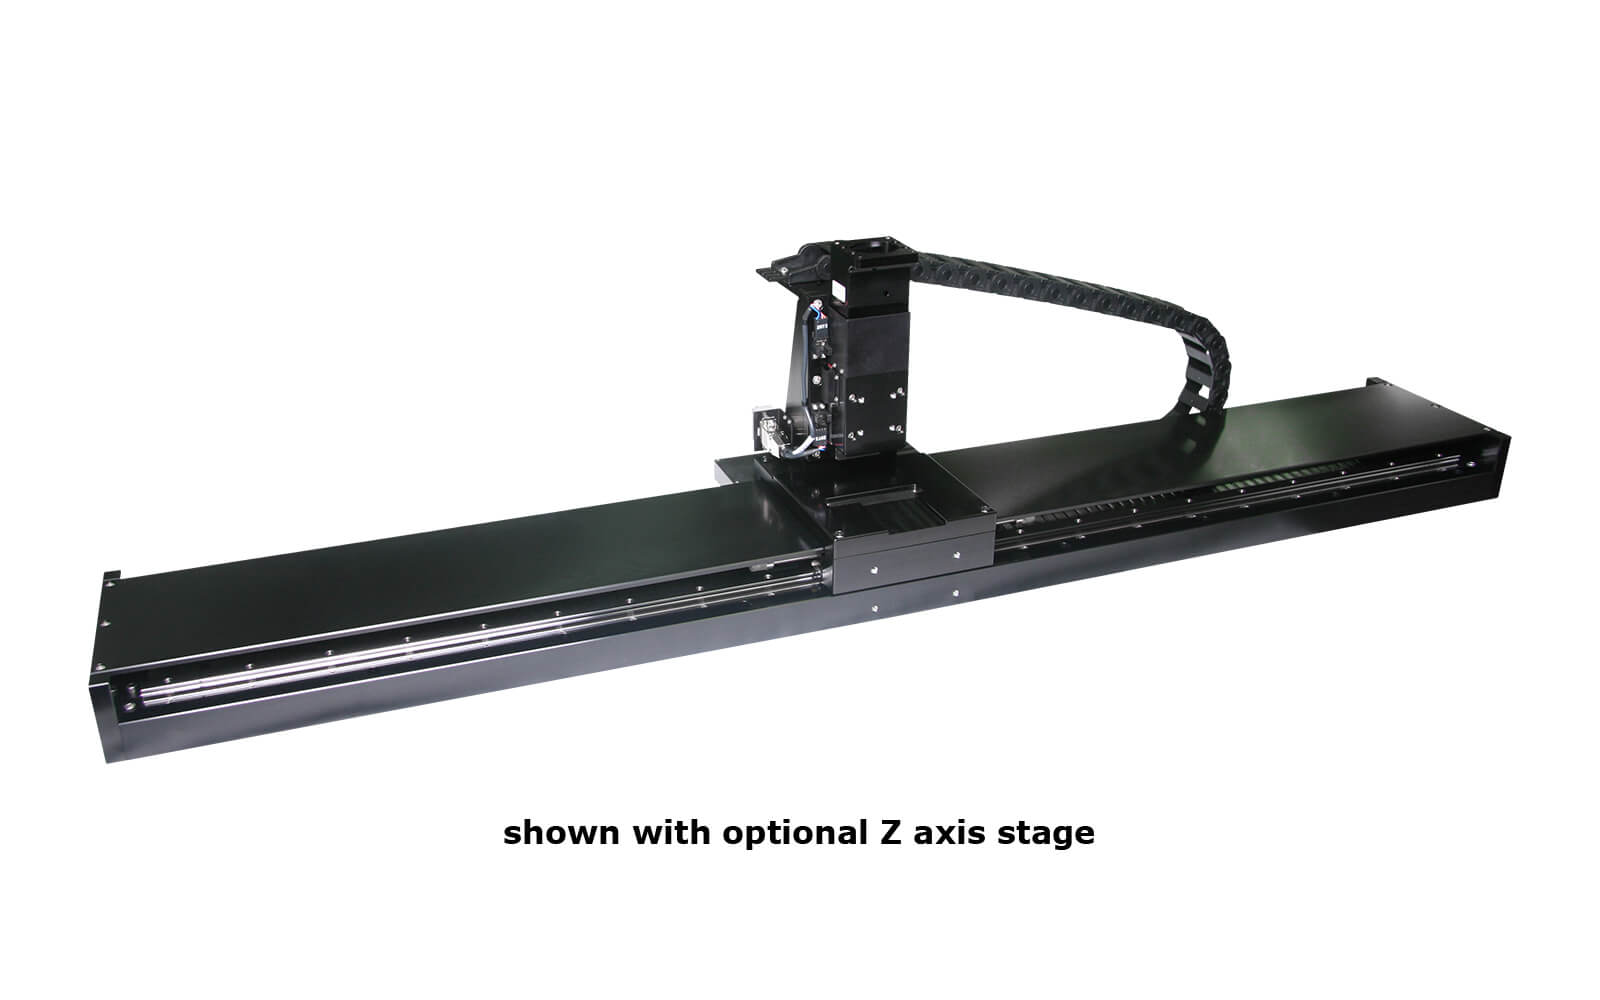 RSL1000X High-Speed Long Travel Stage with optional Z axis